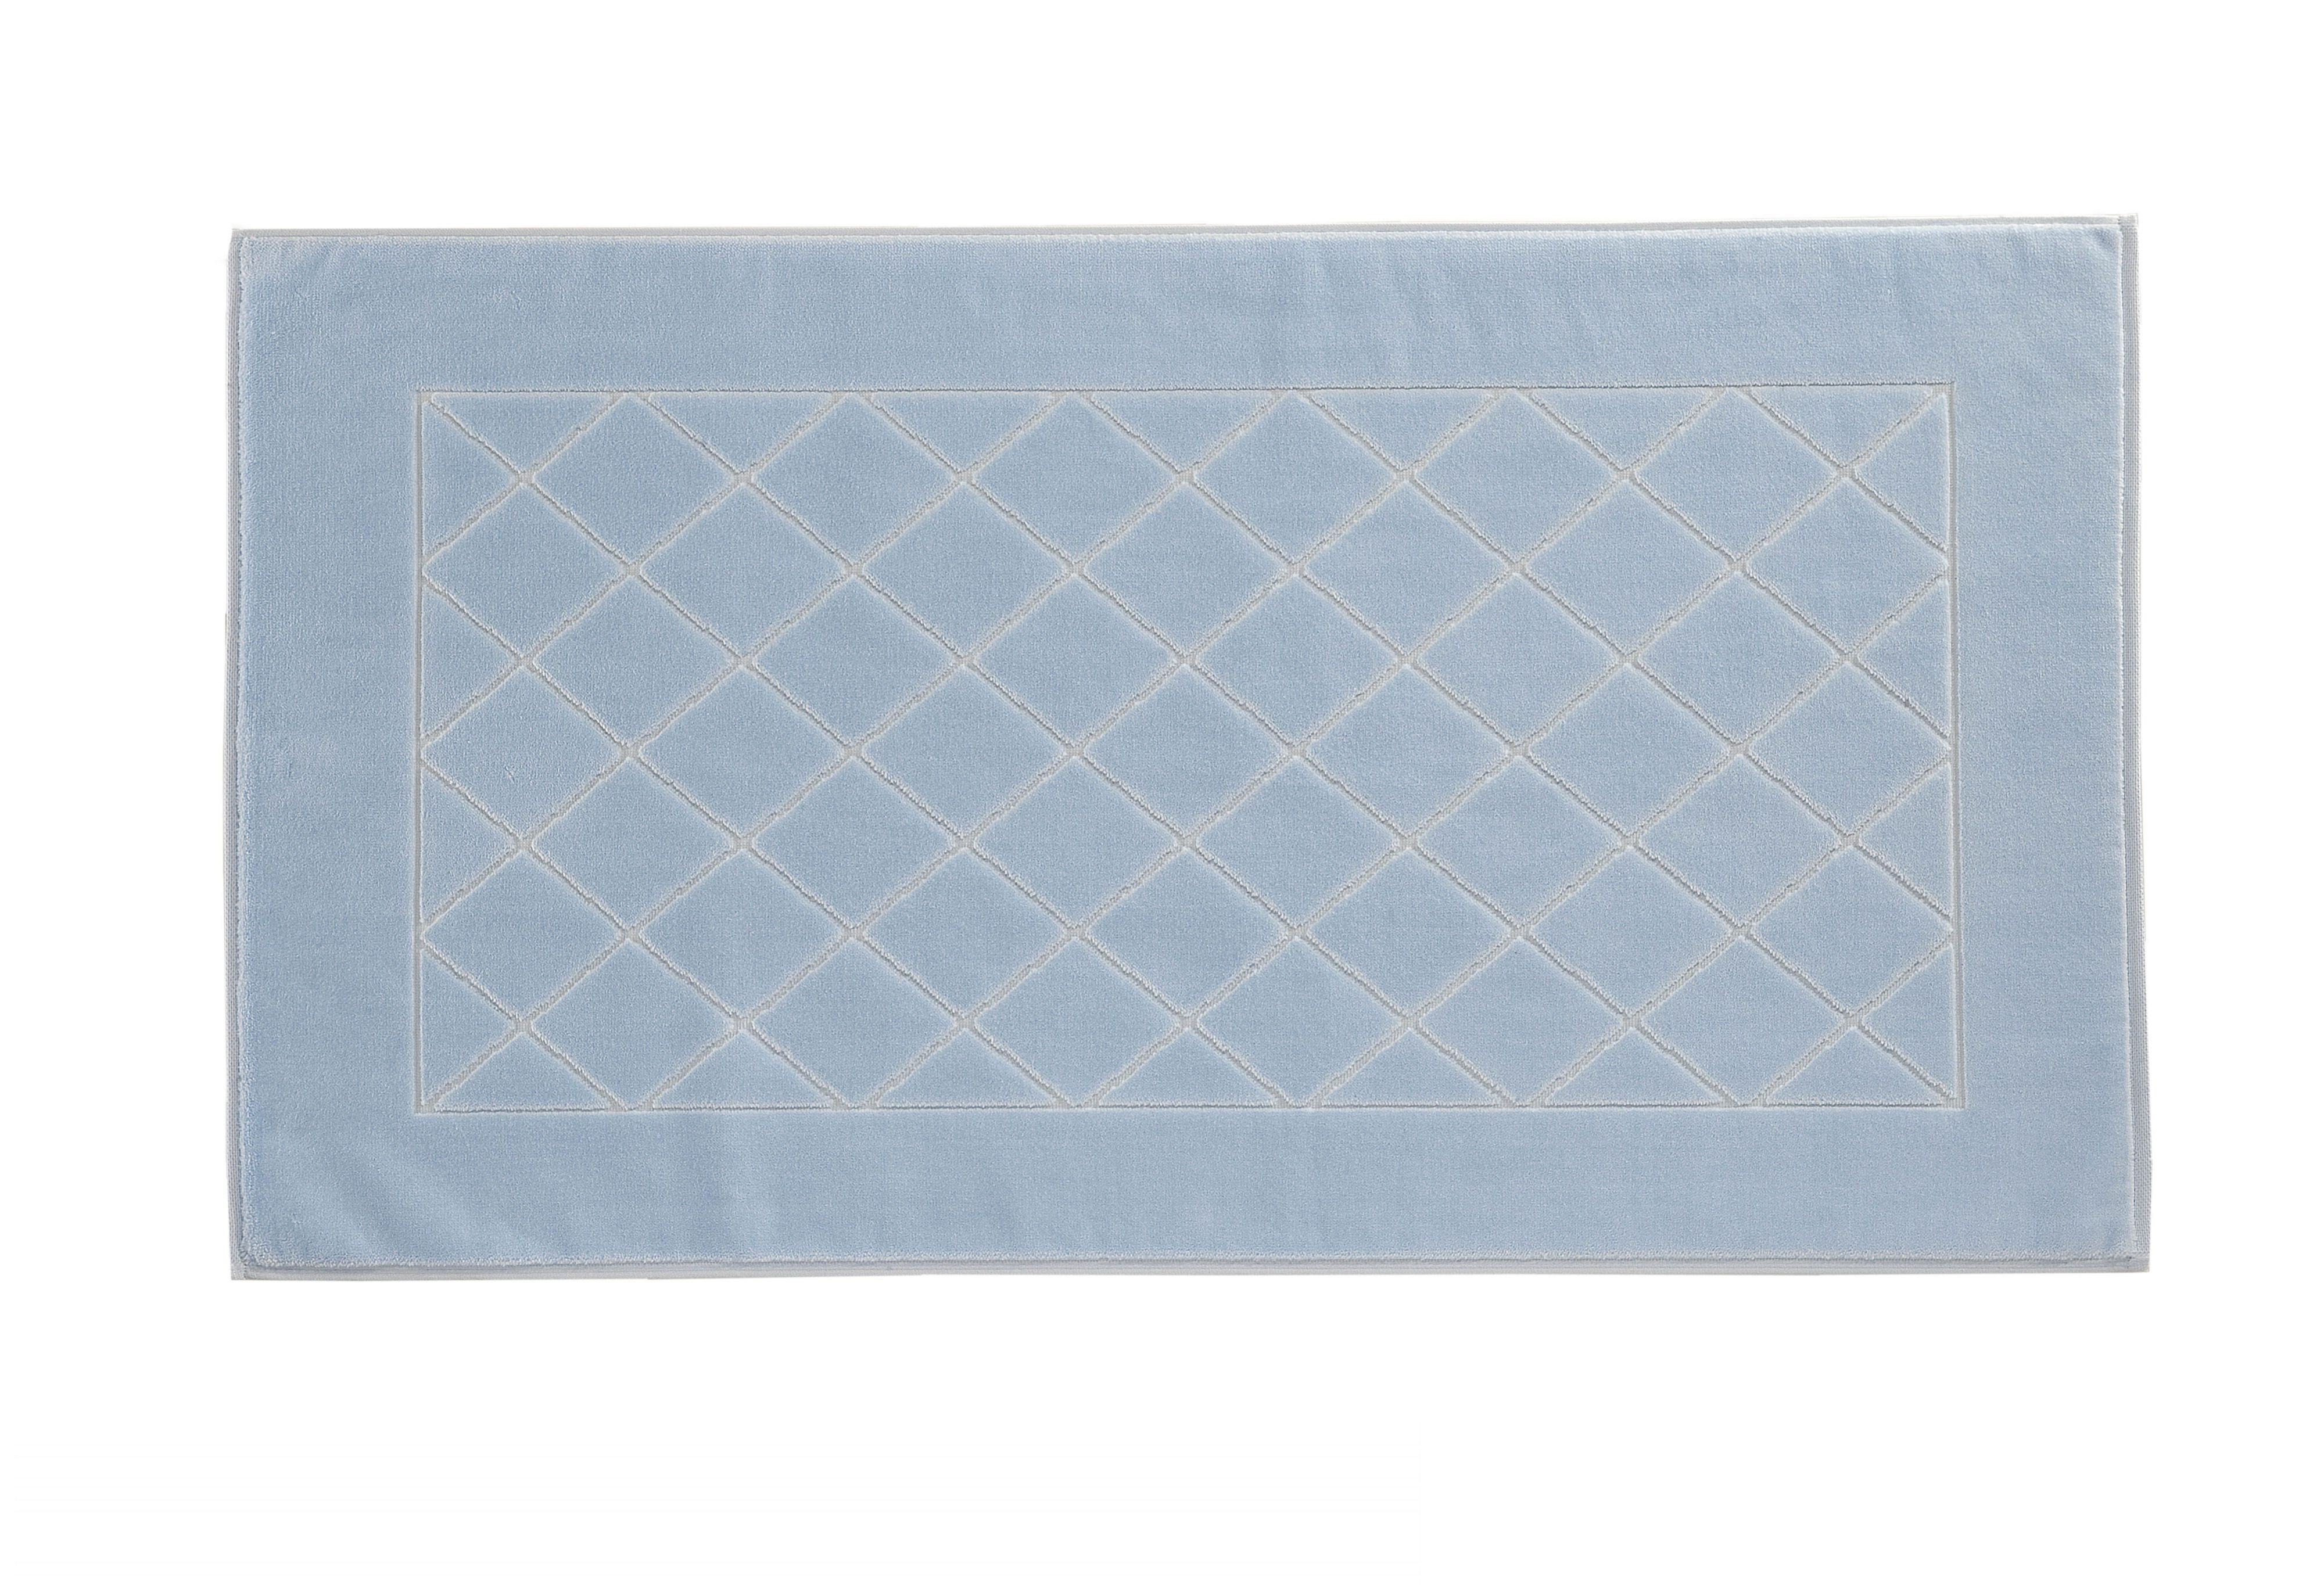 Dreams bath mat range in pale blue